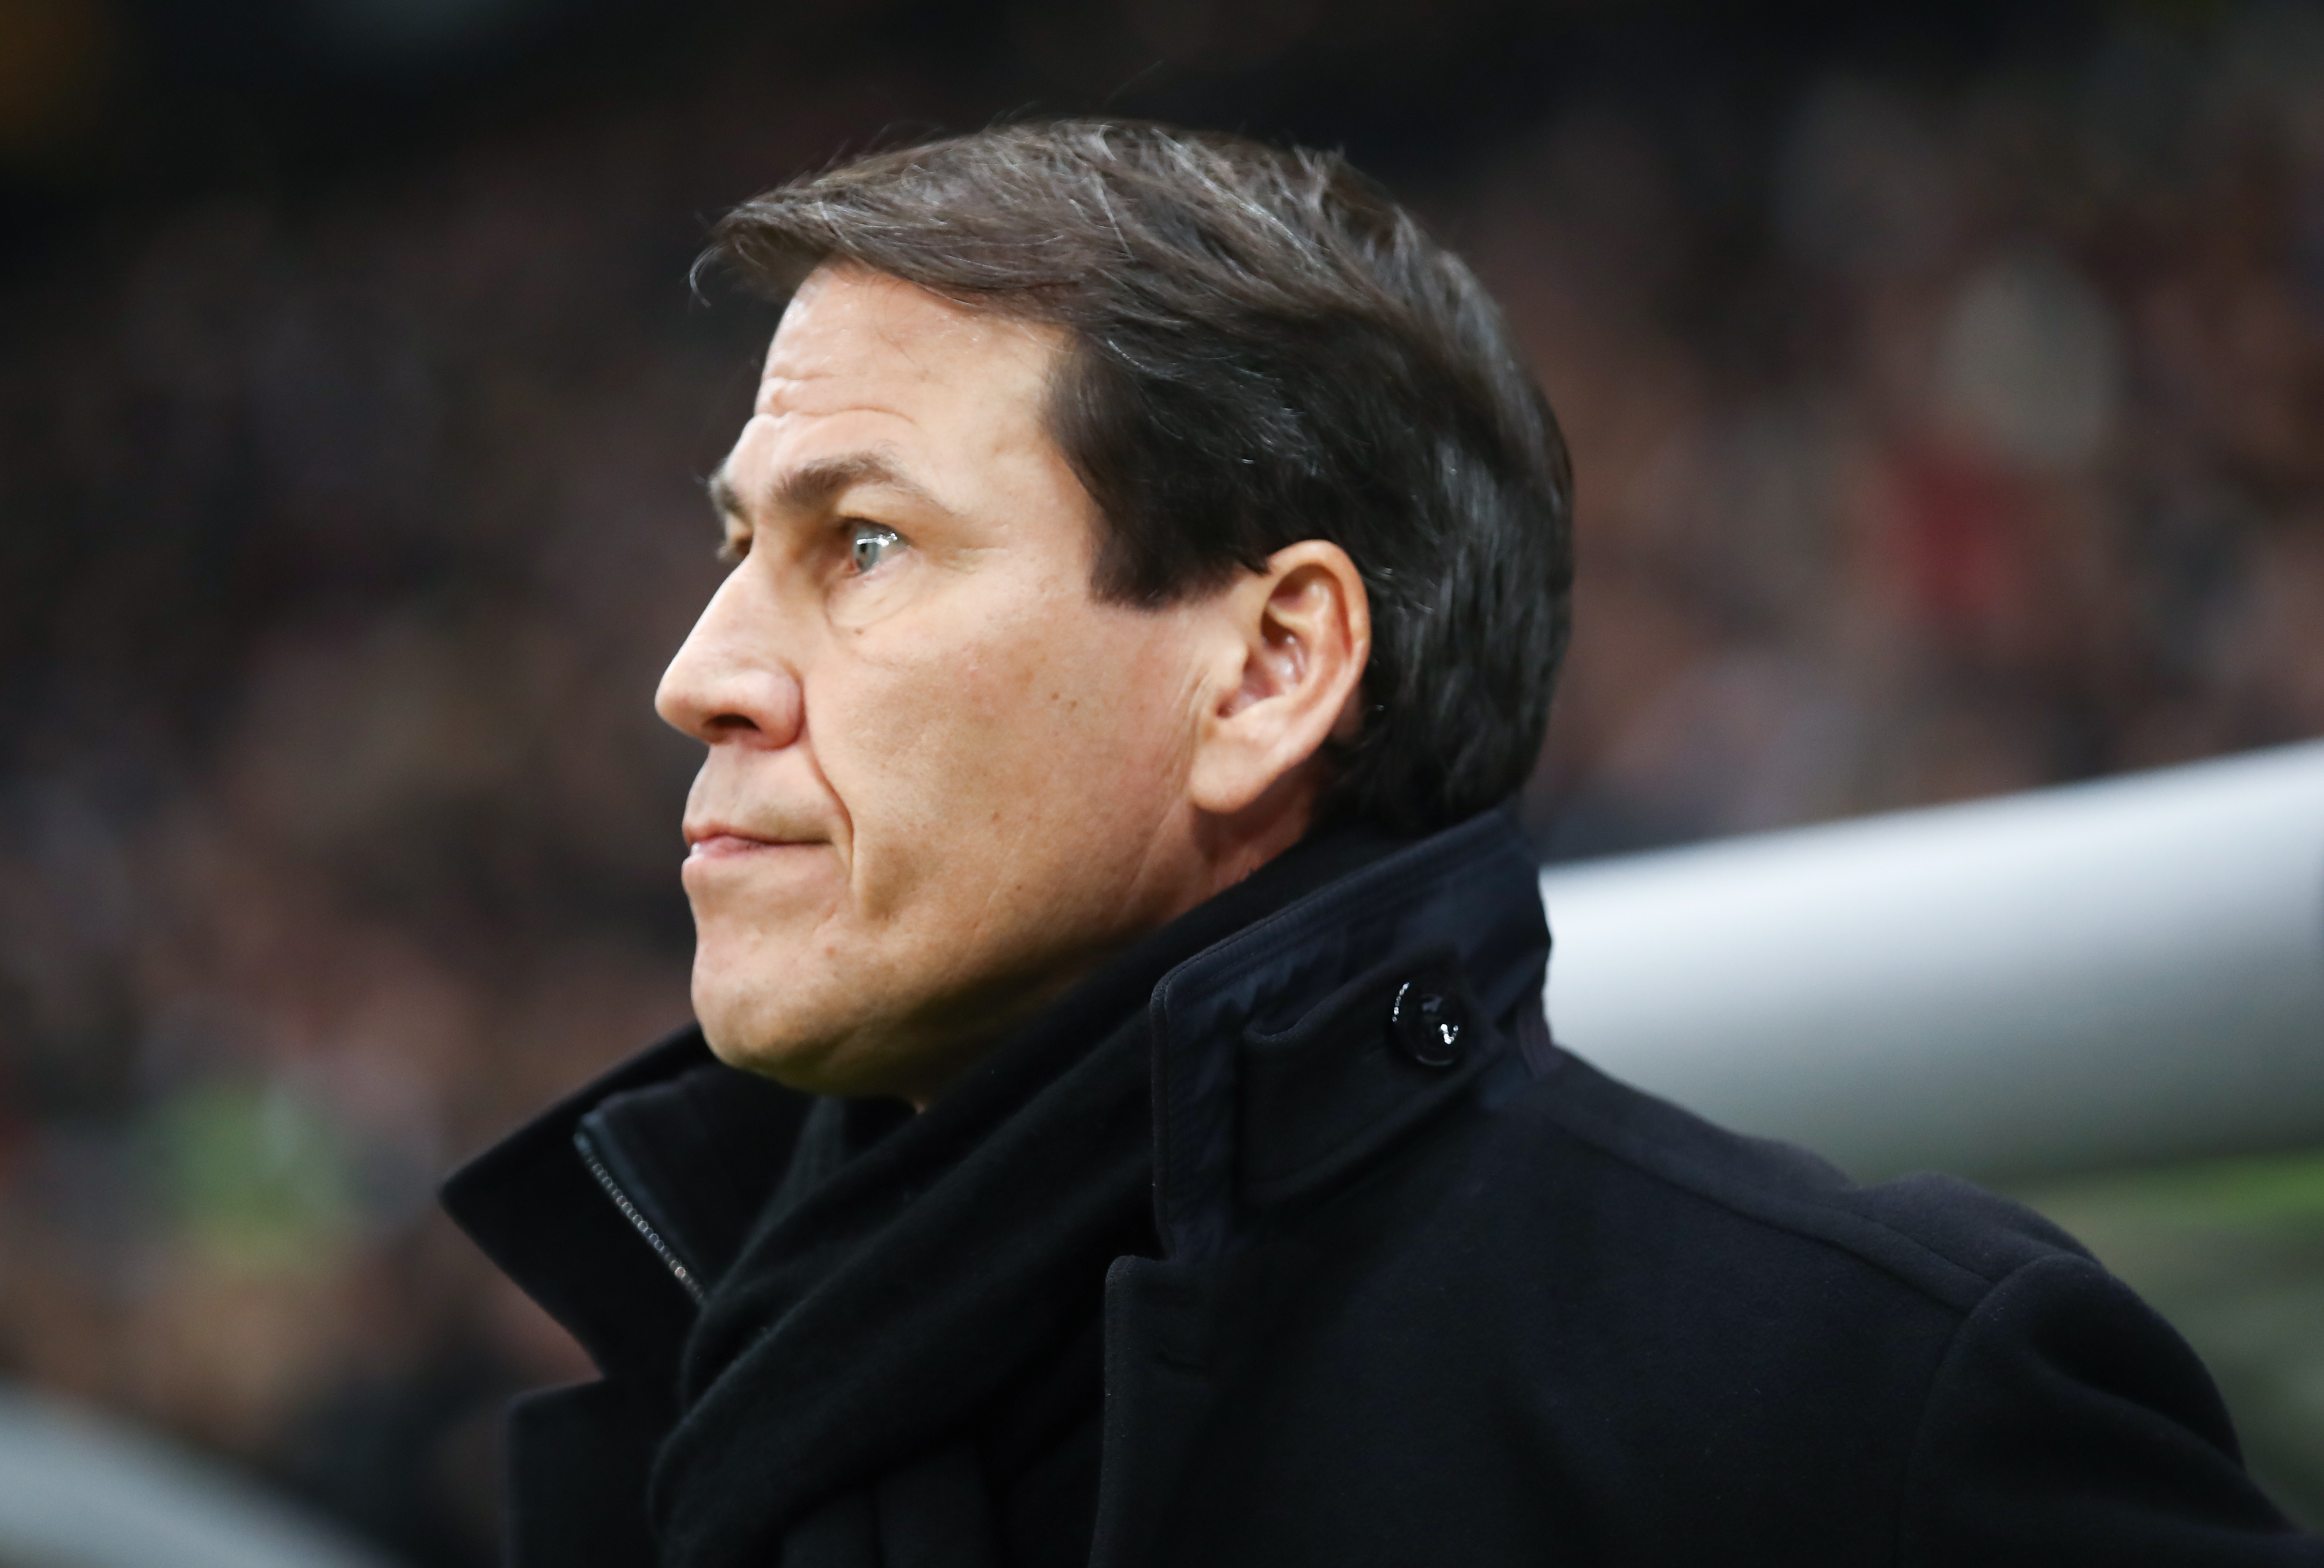 Rudi Garcia needs to change something to get back to winning ways. (Photo by Alex Grimm/Getty Images)